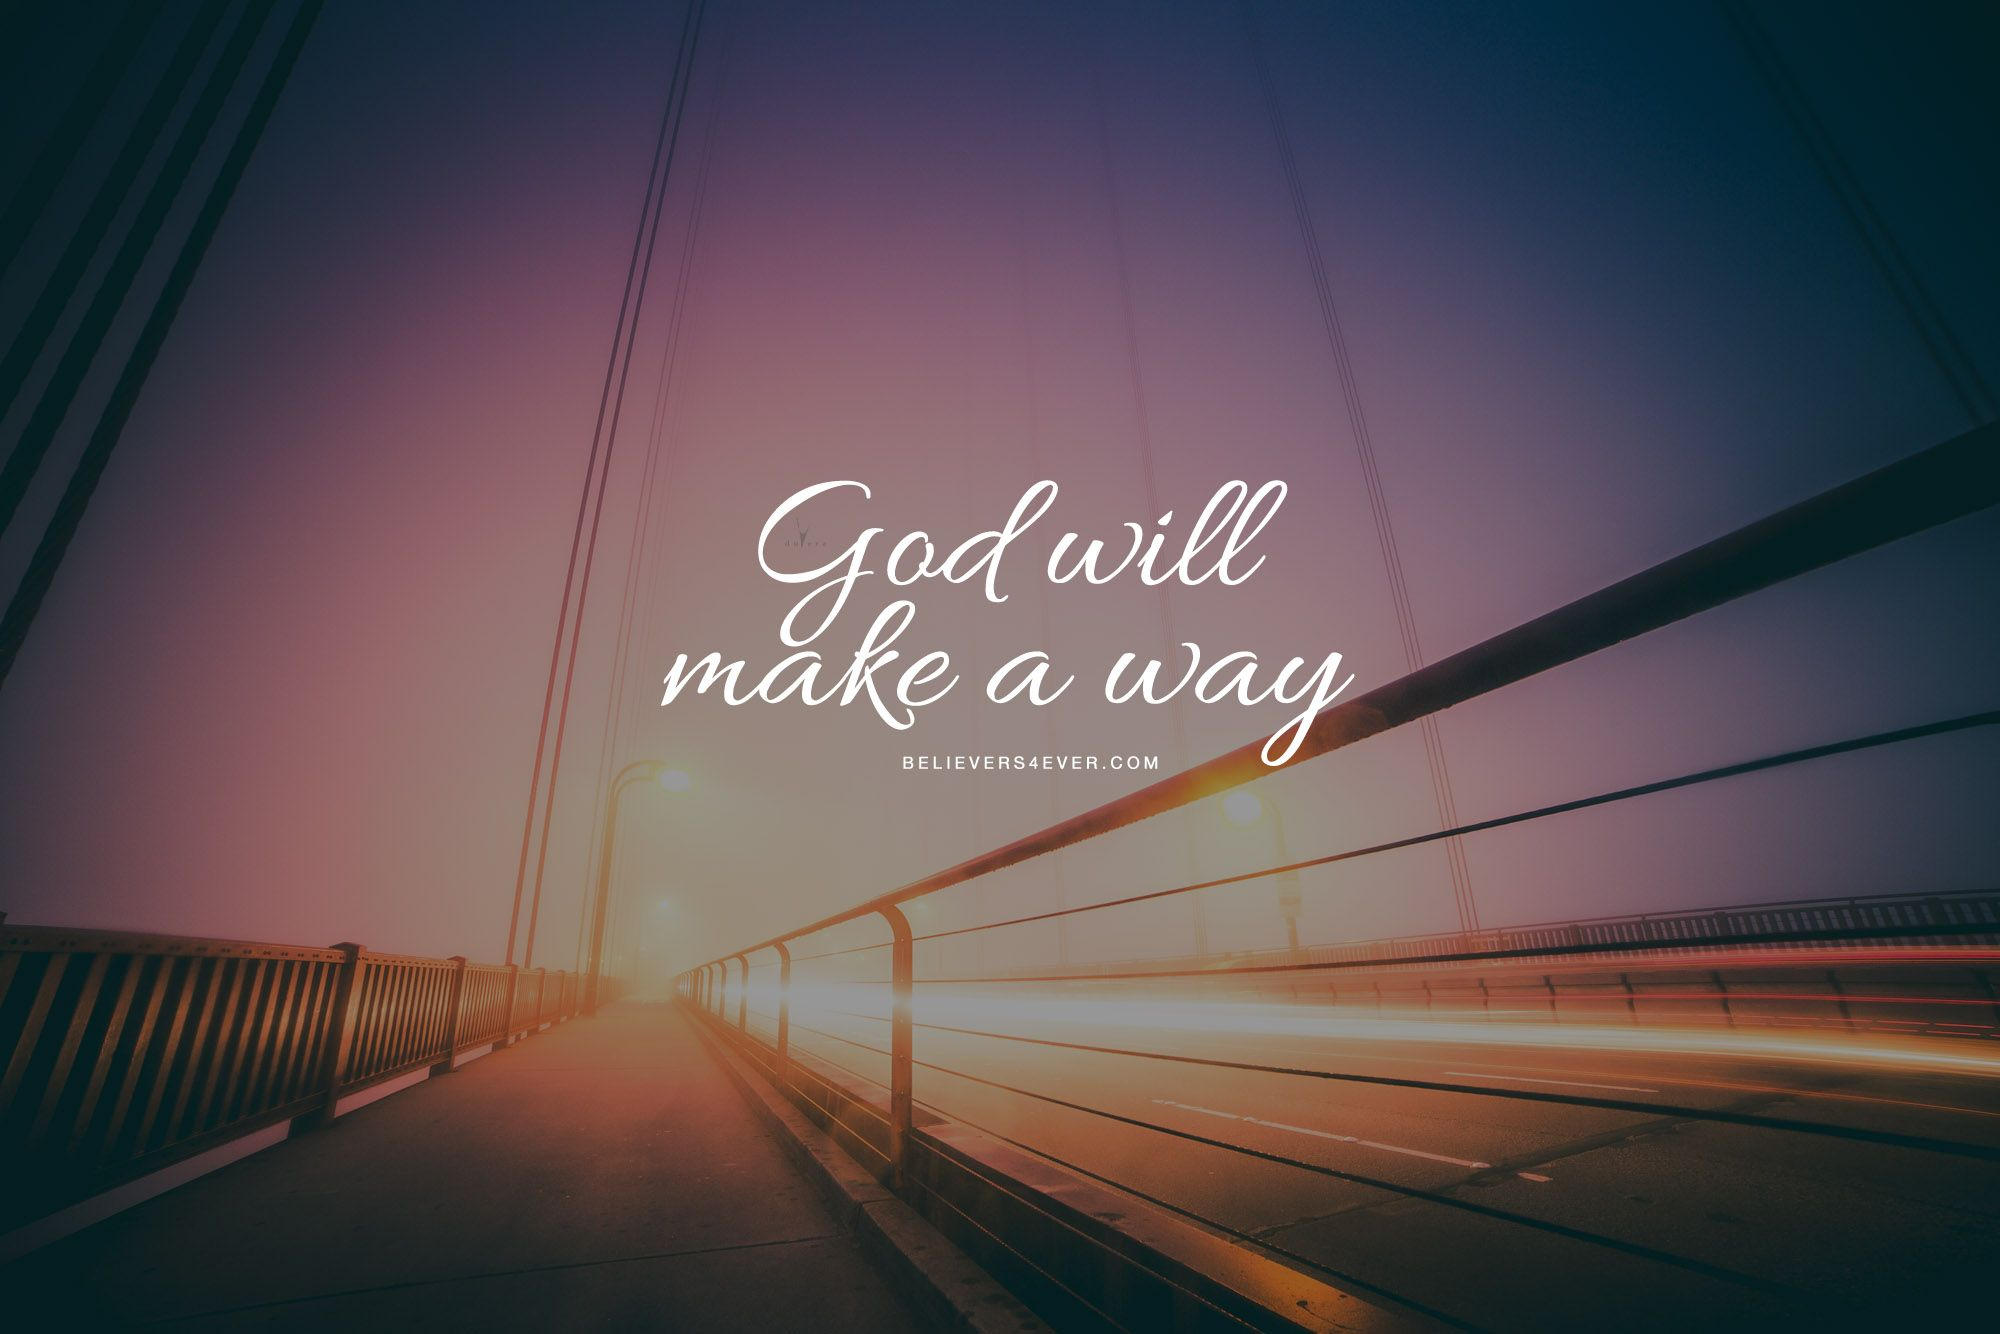 Vintage Wallpaper Quotes God Will Make A Way Christian Quotes Pinterest